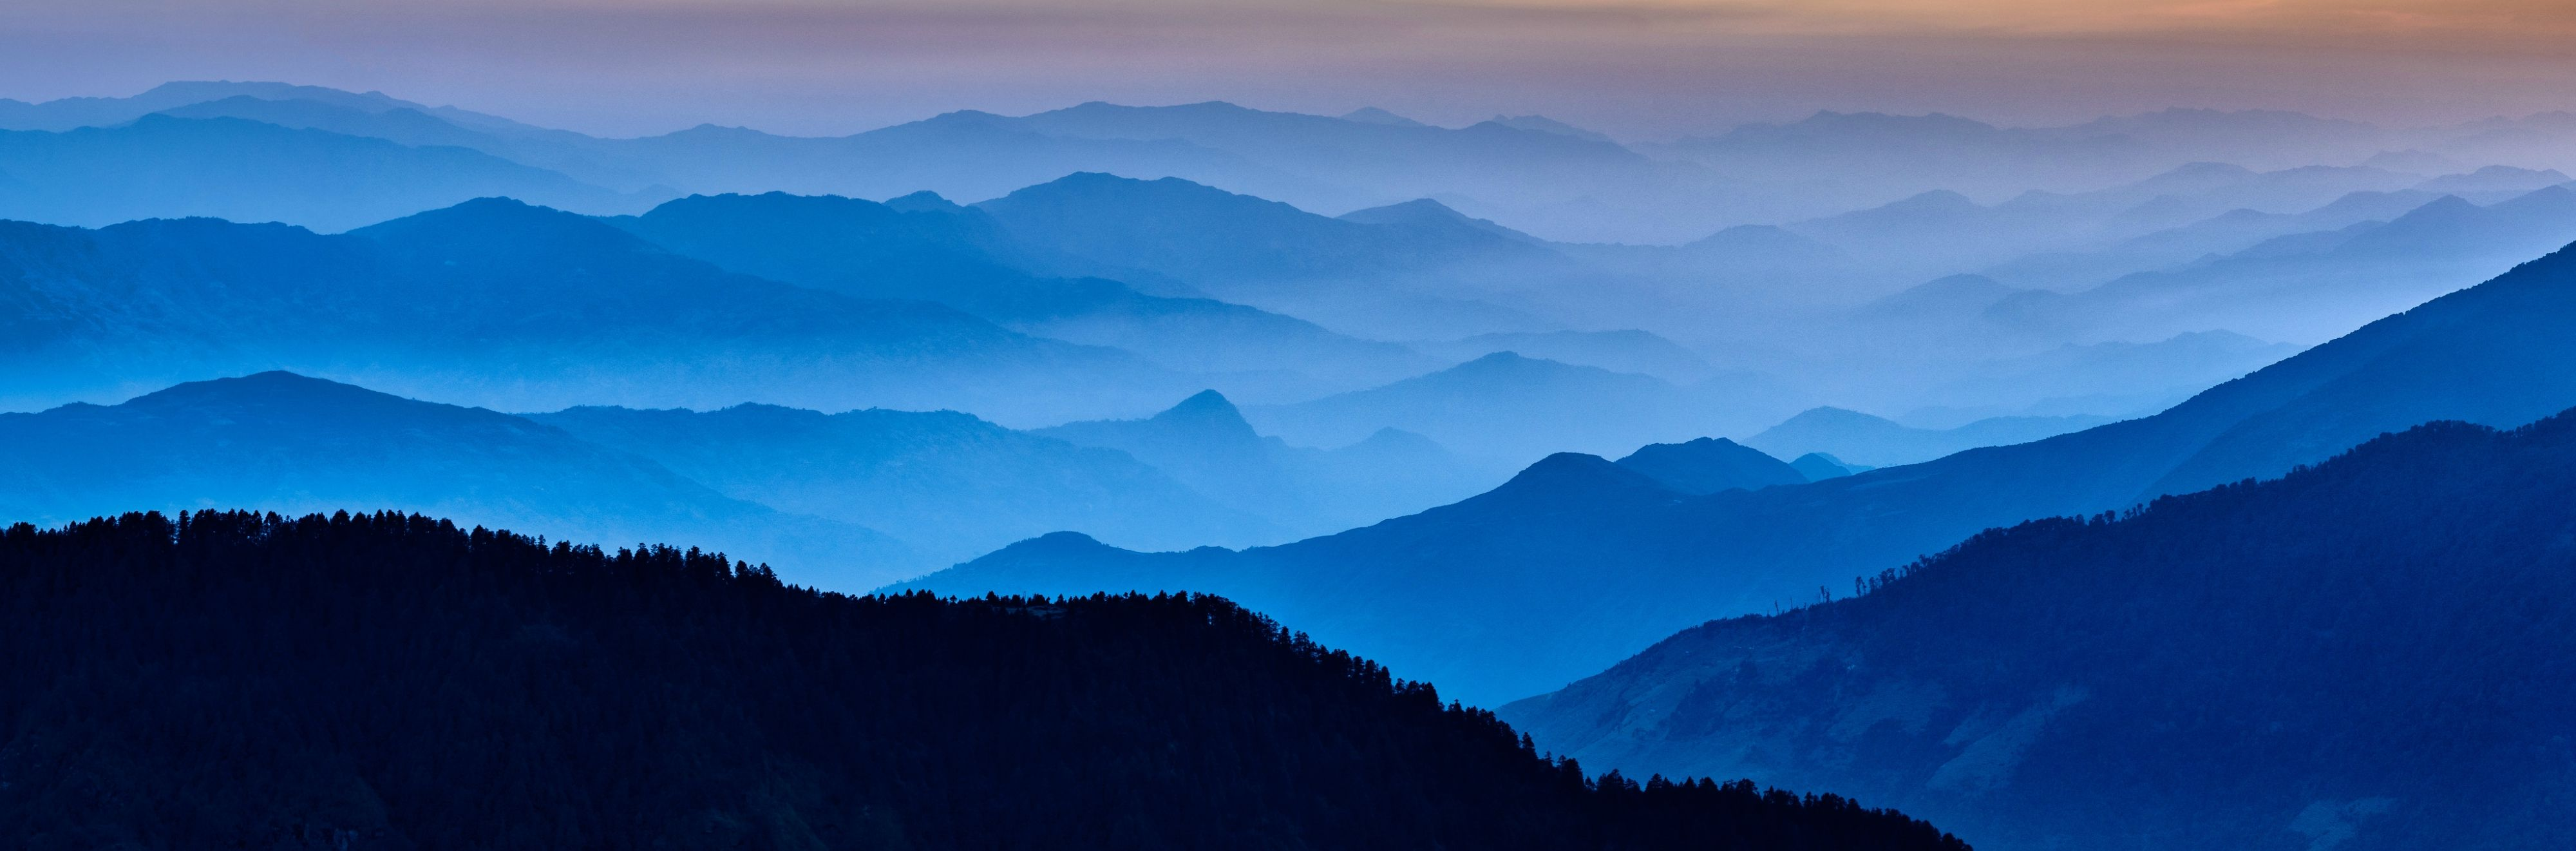 Blue_Ridge_Mountains1.jpg